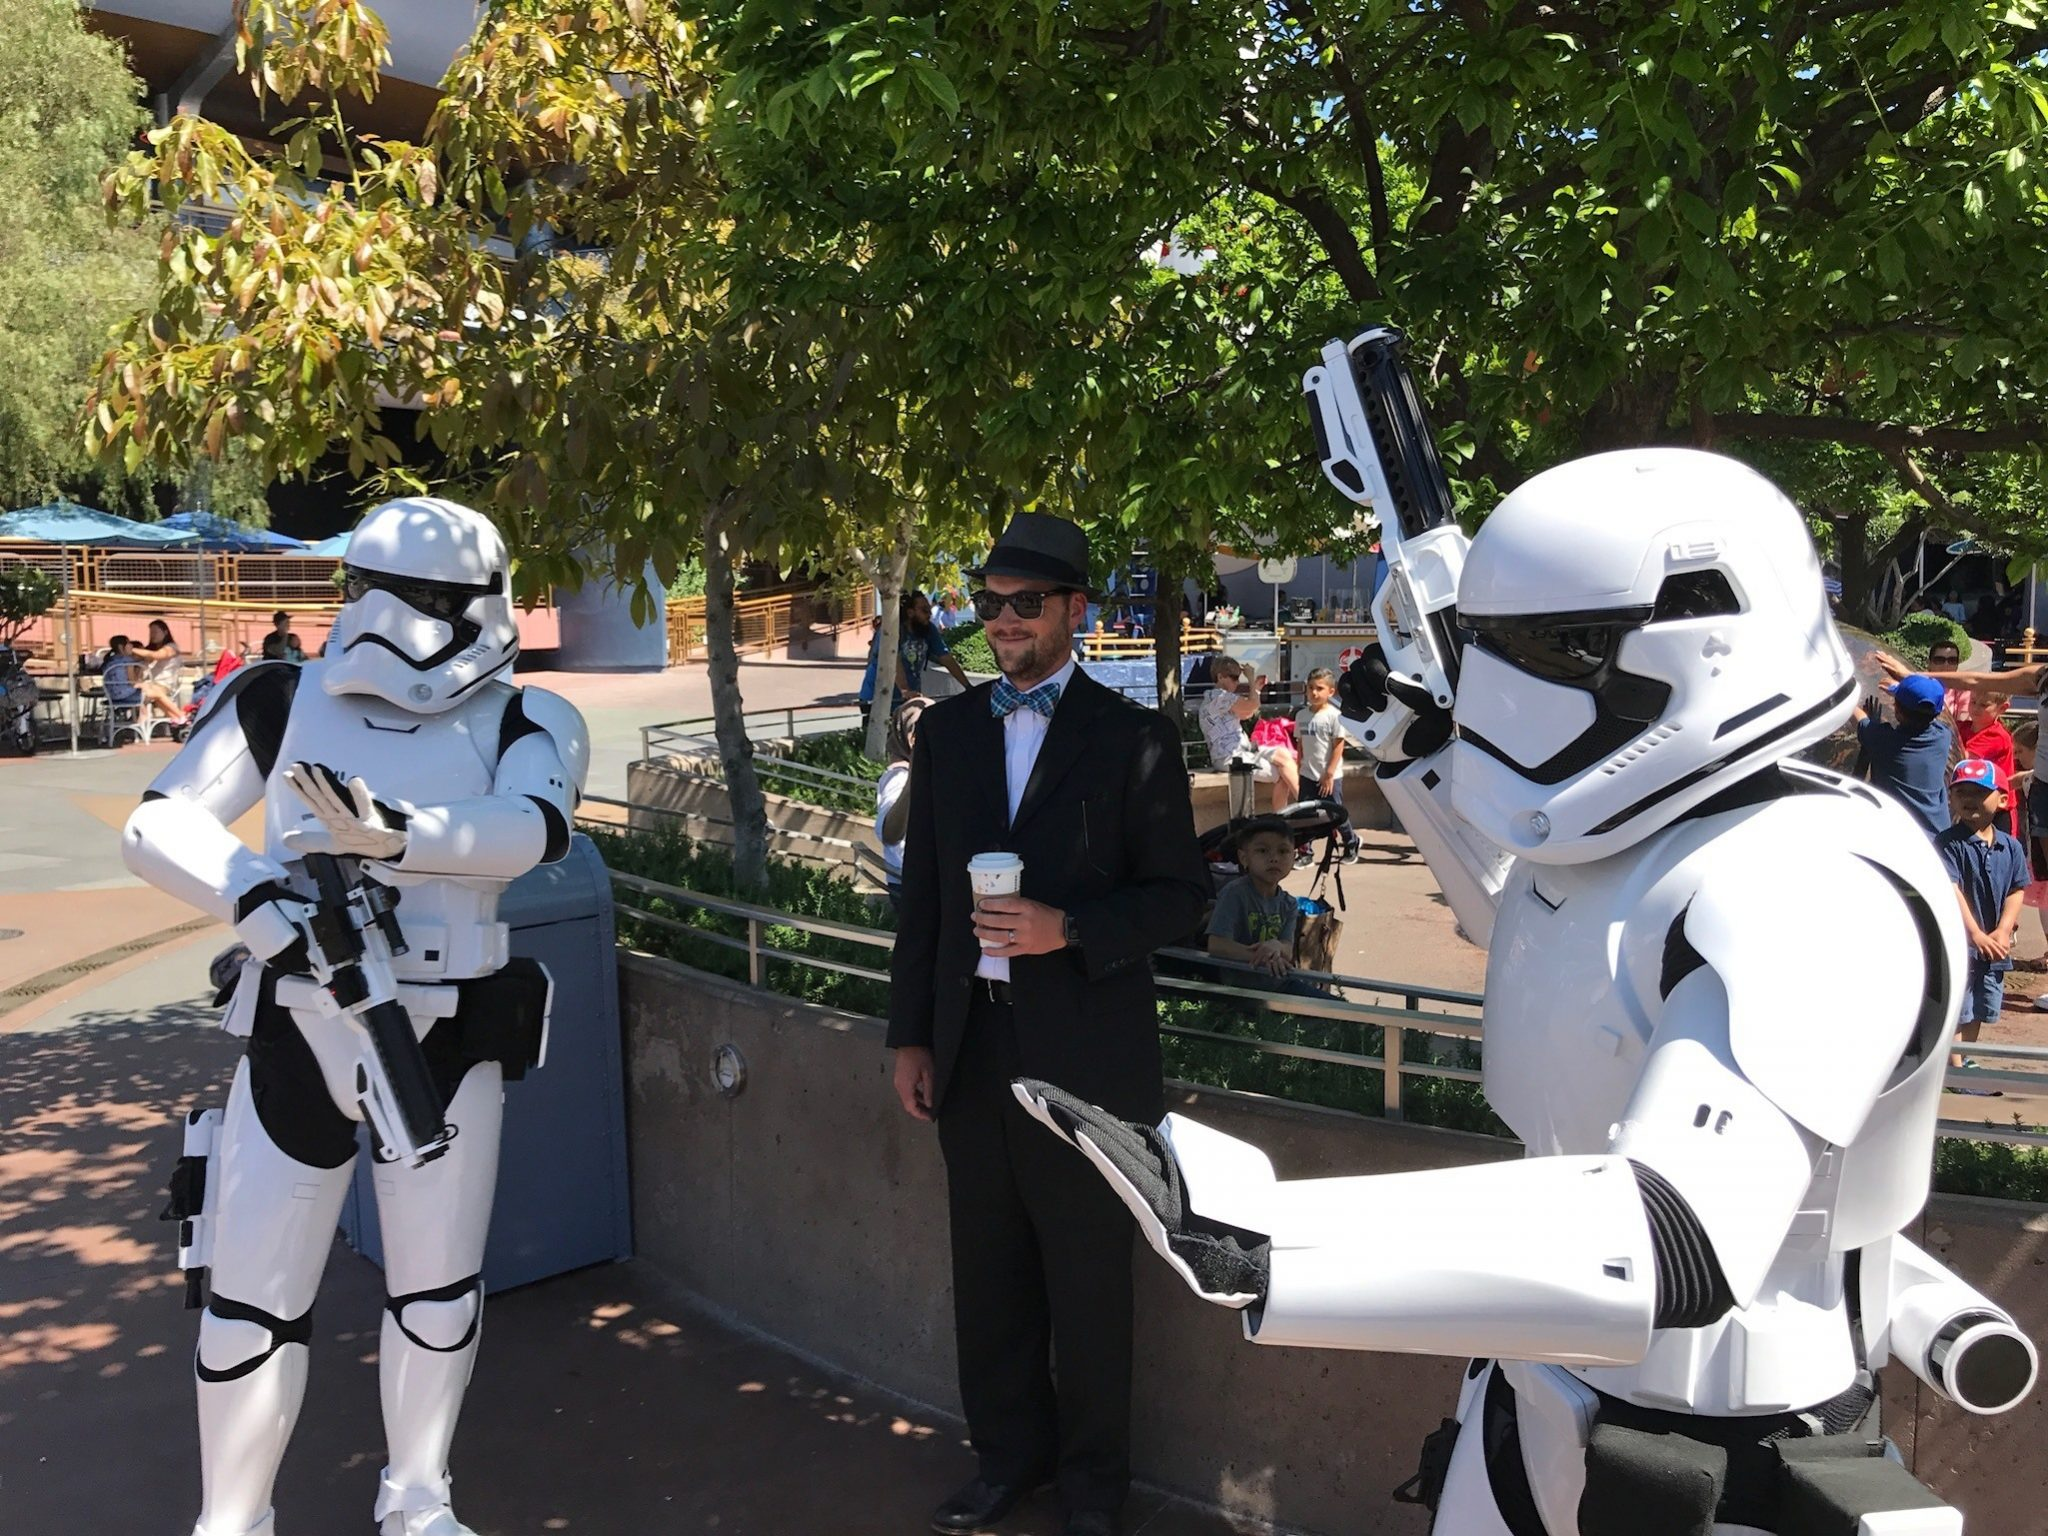 Mr. DAPs gets arrested by the First Order at Disneyland